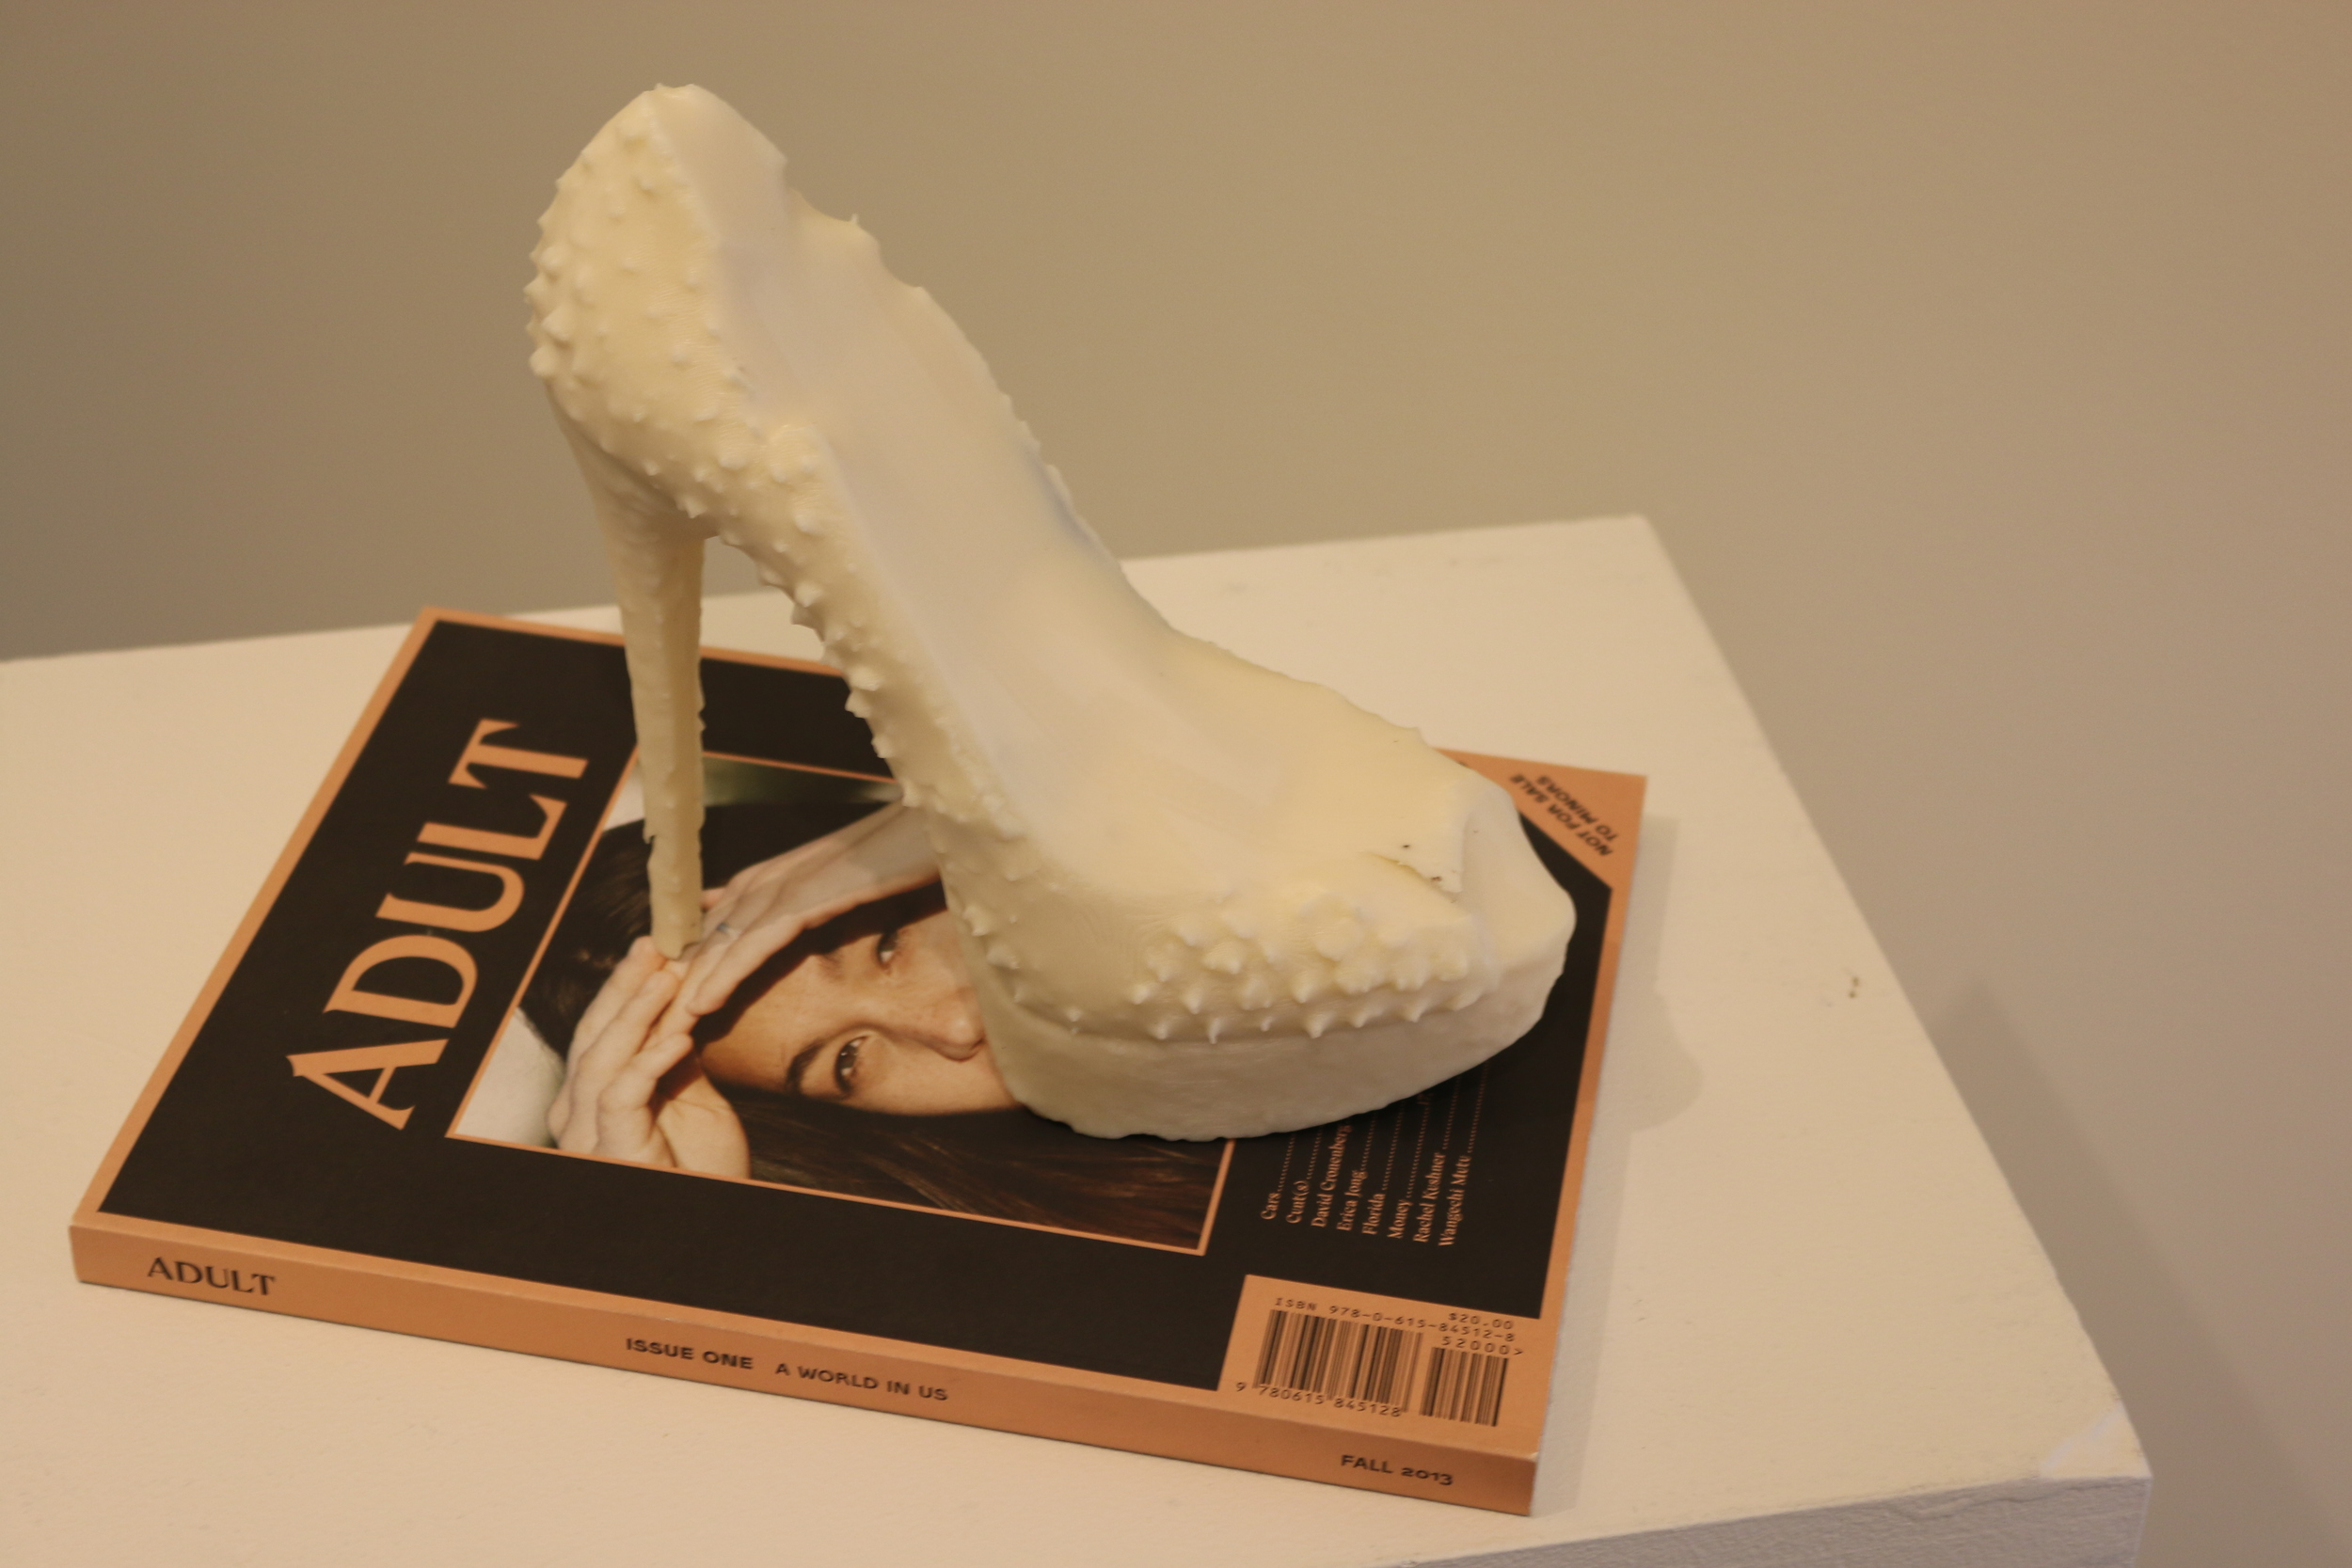 "HARD HARD ON ON  Christian Louboutin Replica Plastic Shoe, Magazine. 7.5""x7.5""x10"". 2014"